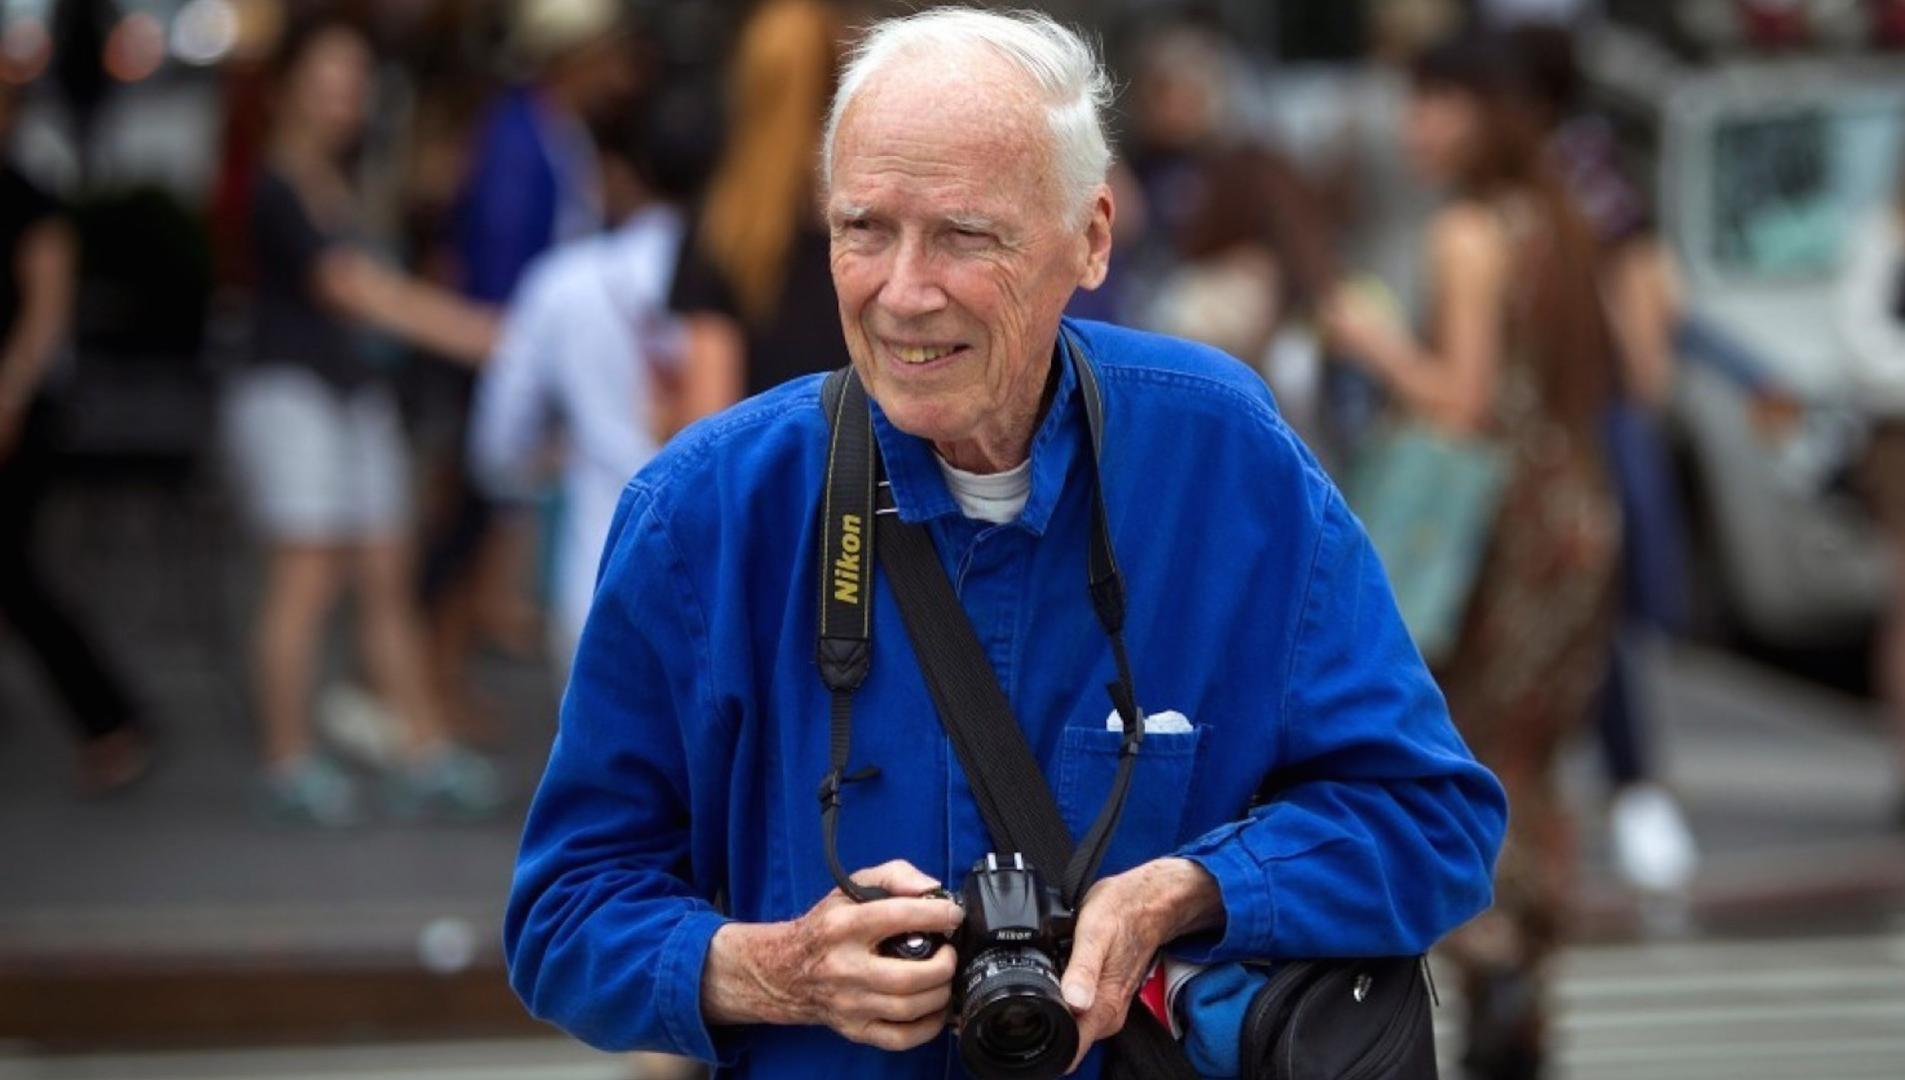 What Bill Cunningham taught us about ethical journalism